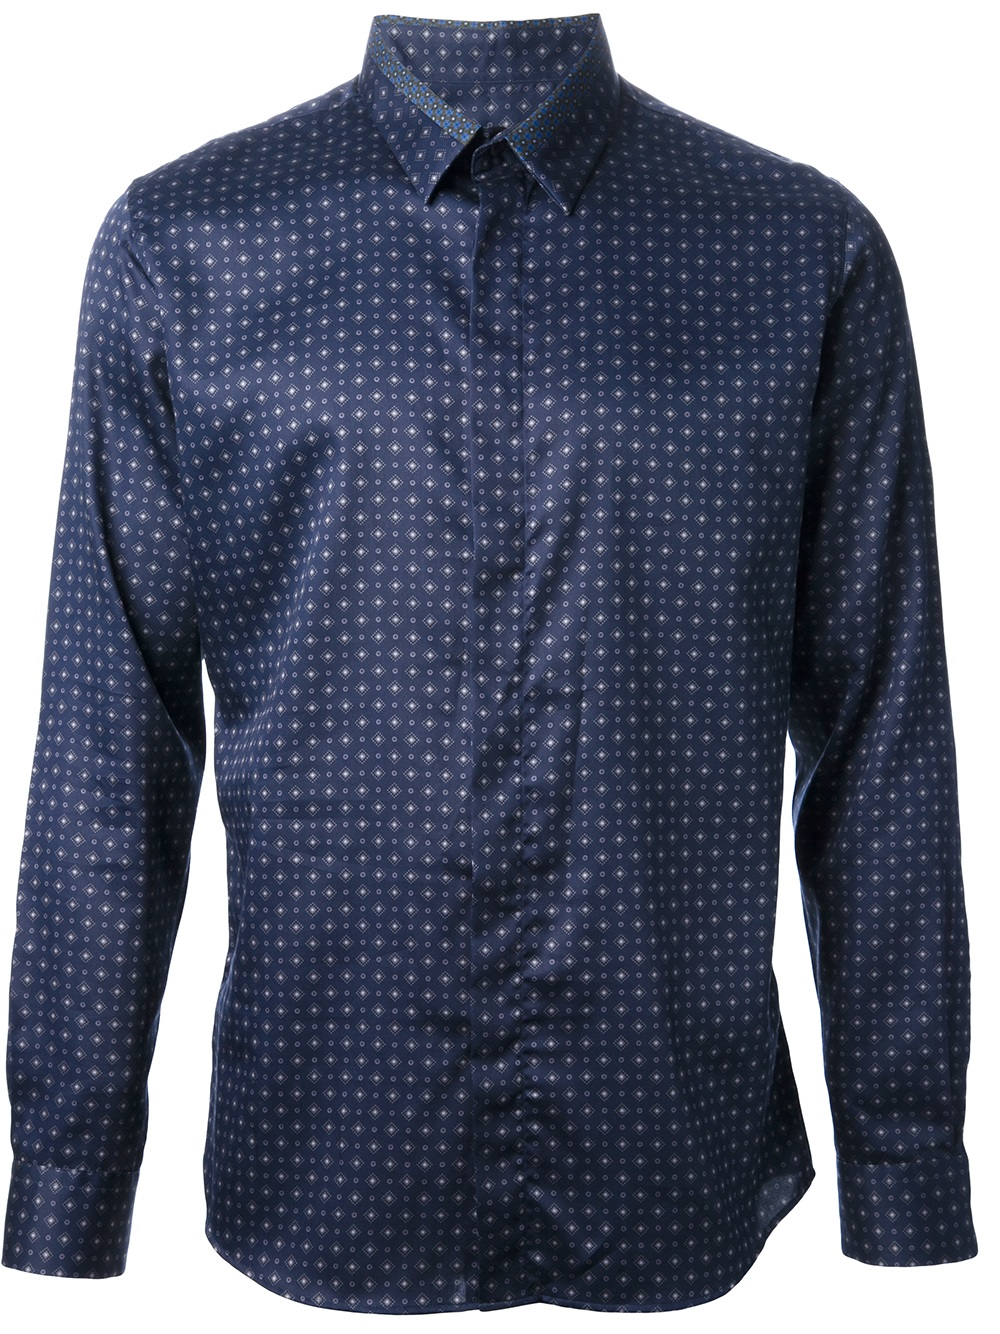 Paul smith diamond print shirt in blue for men navy lyst for Diamond and silk t shirts